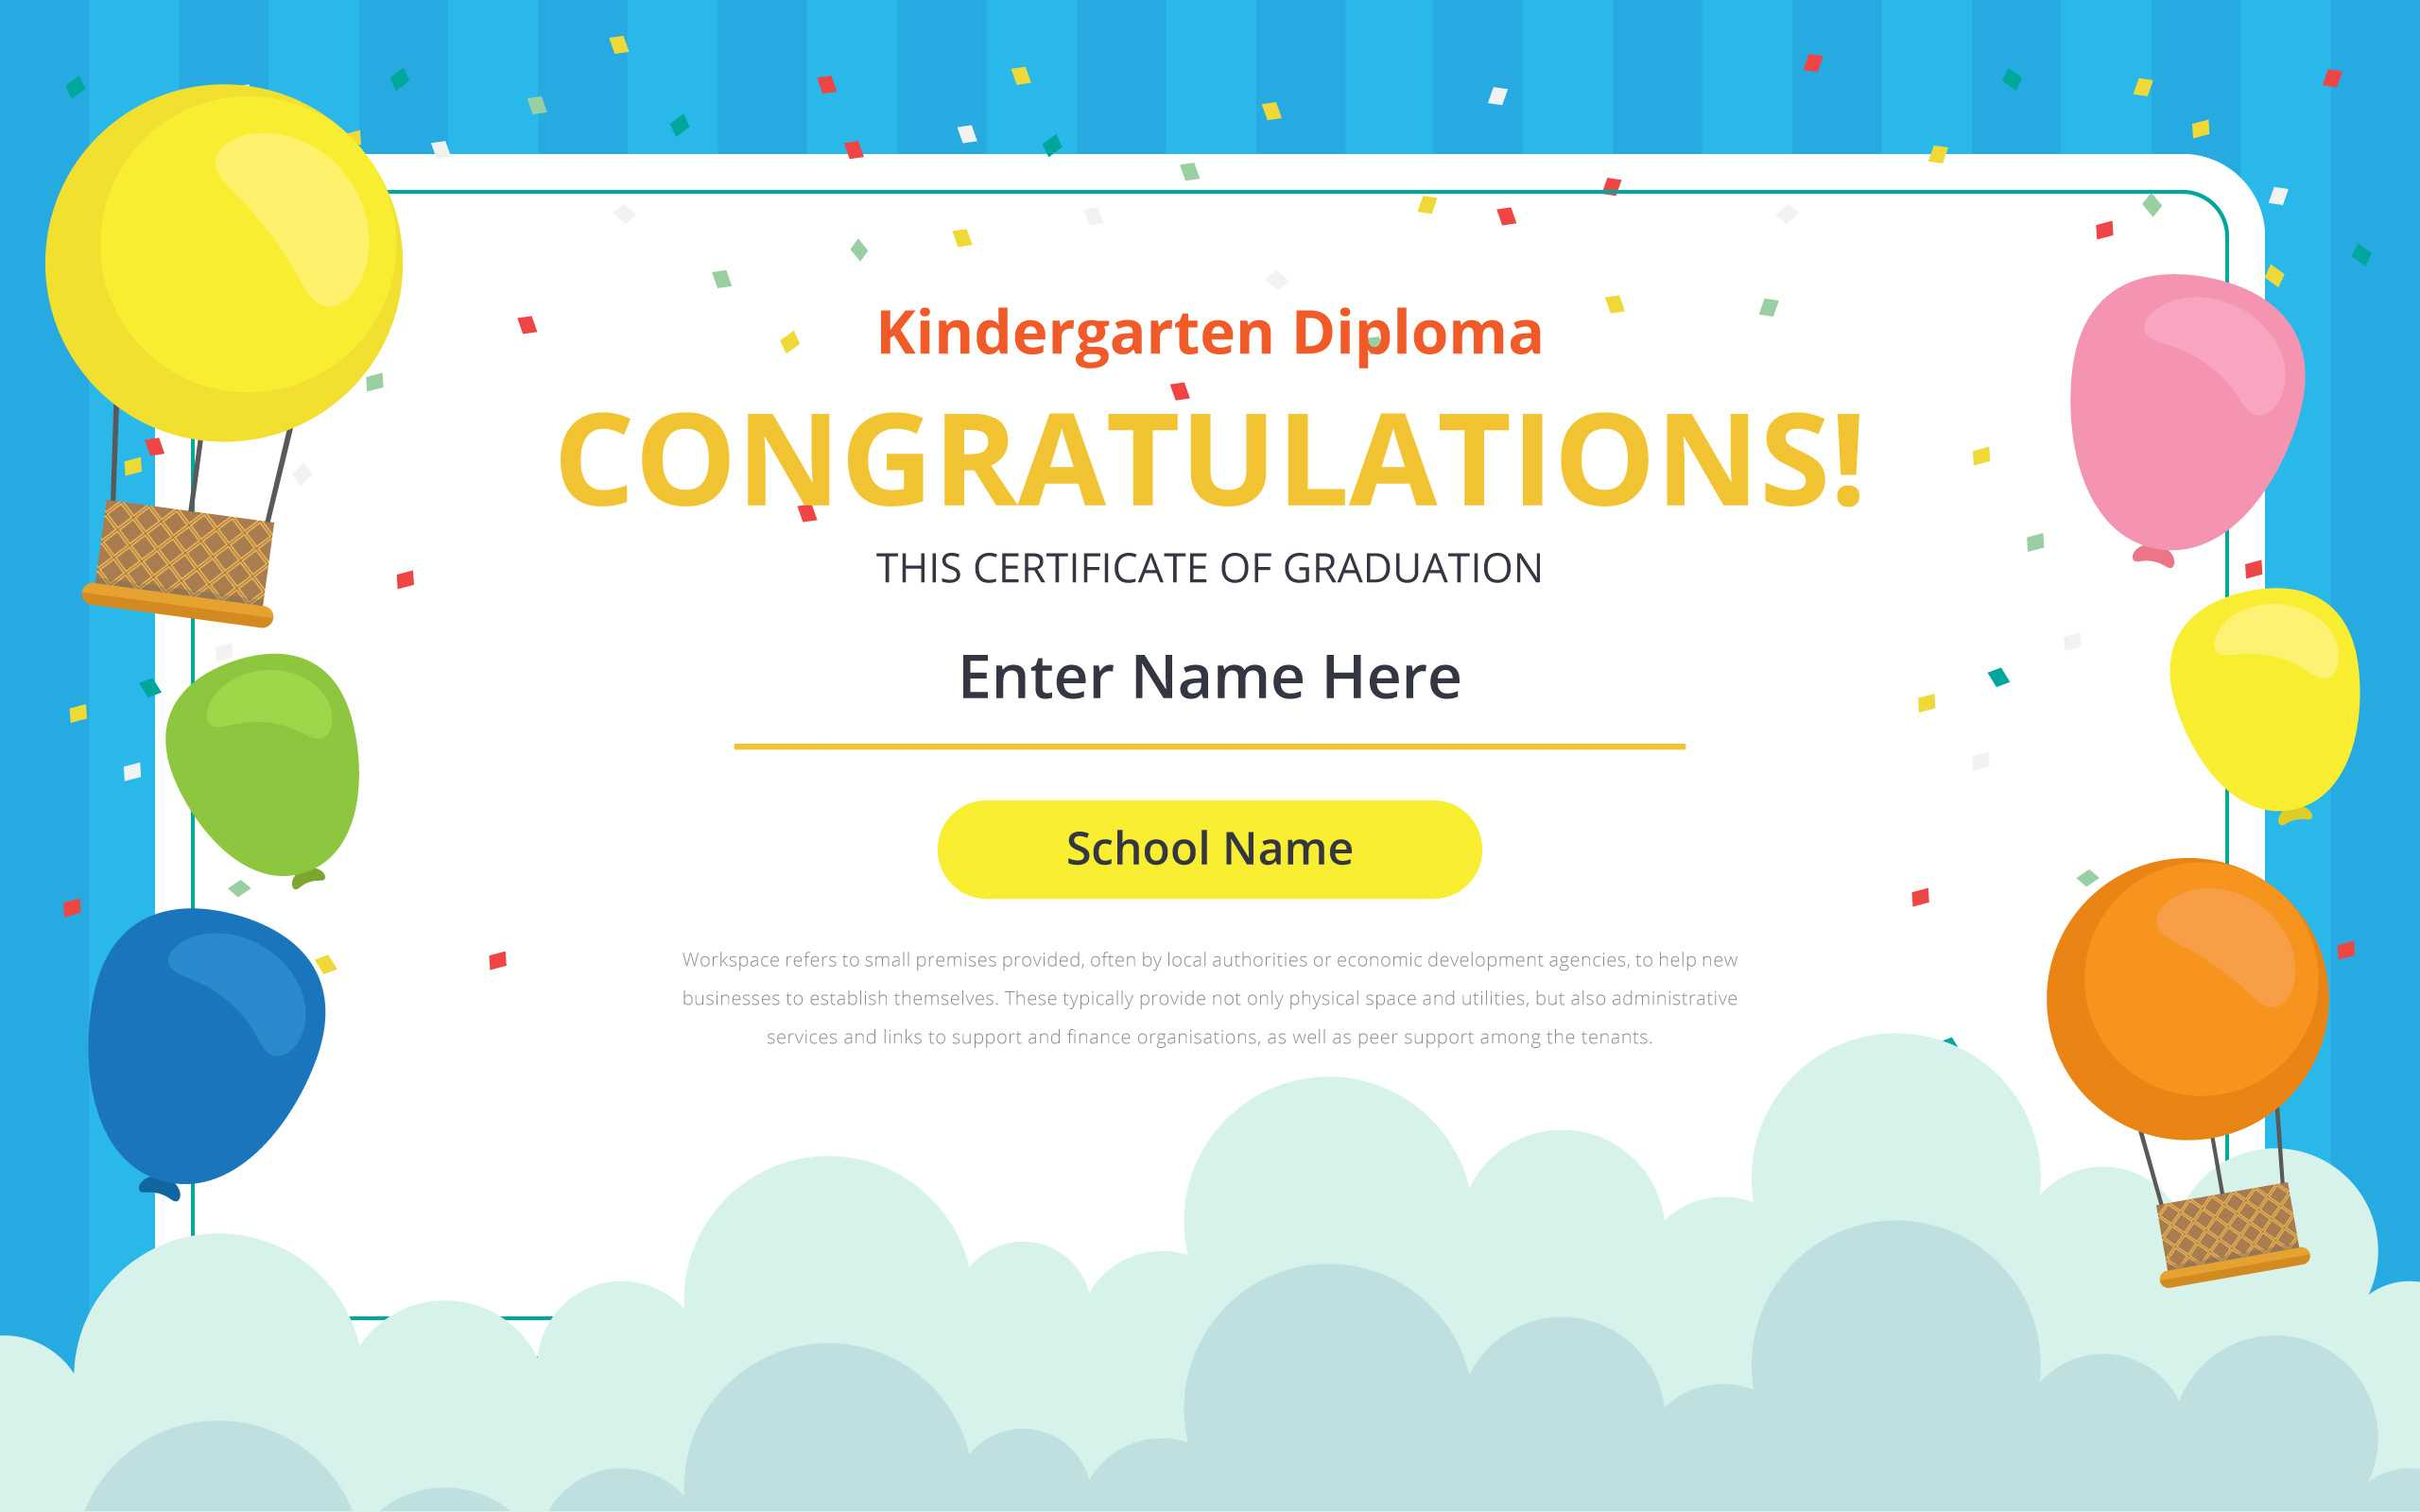 Kindergarten Certificate Free Vector Art - (21 Free Downloads) With Small Certificate Template